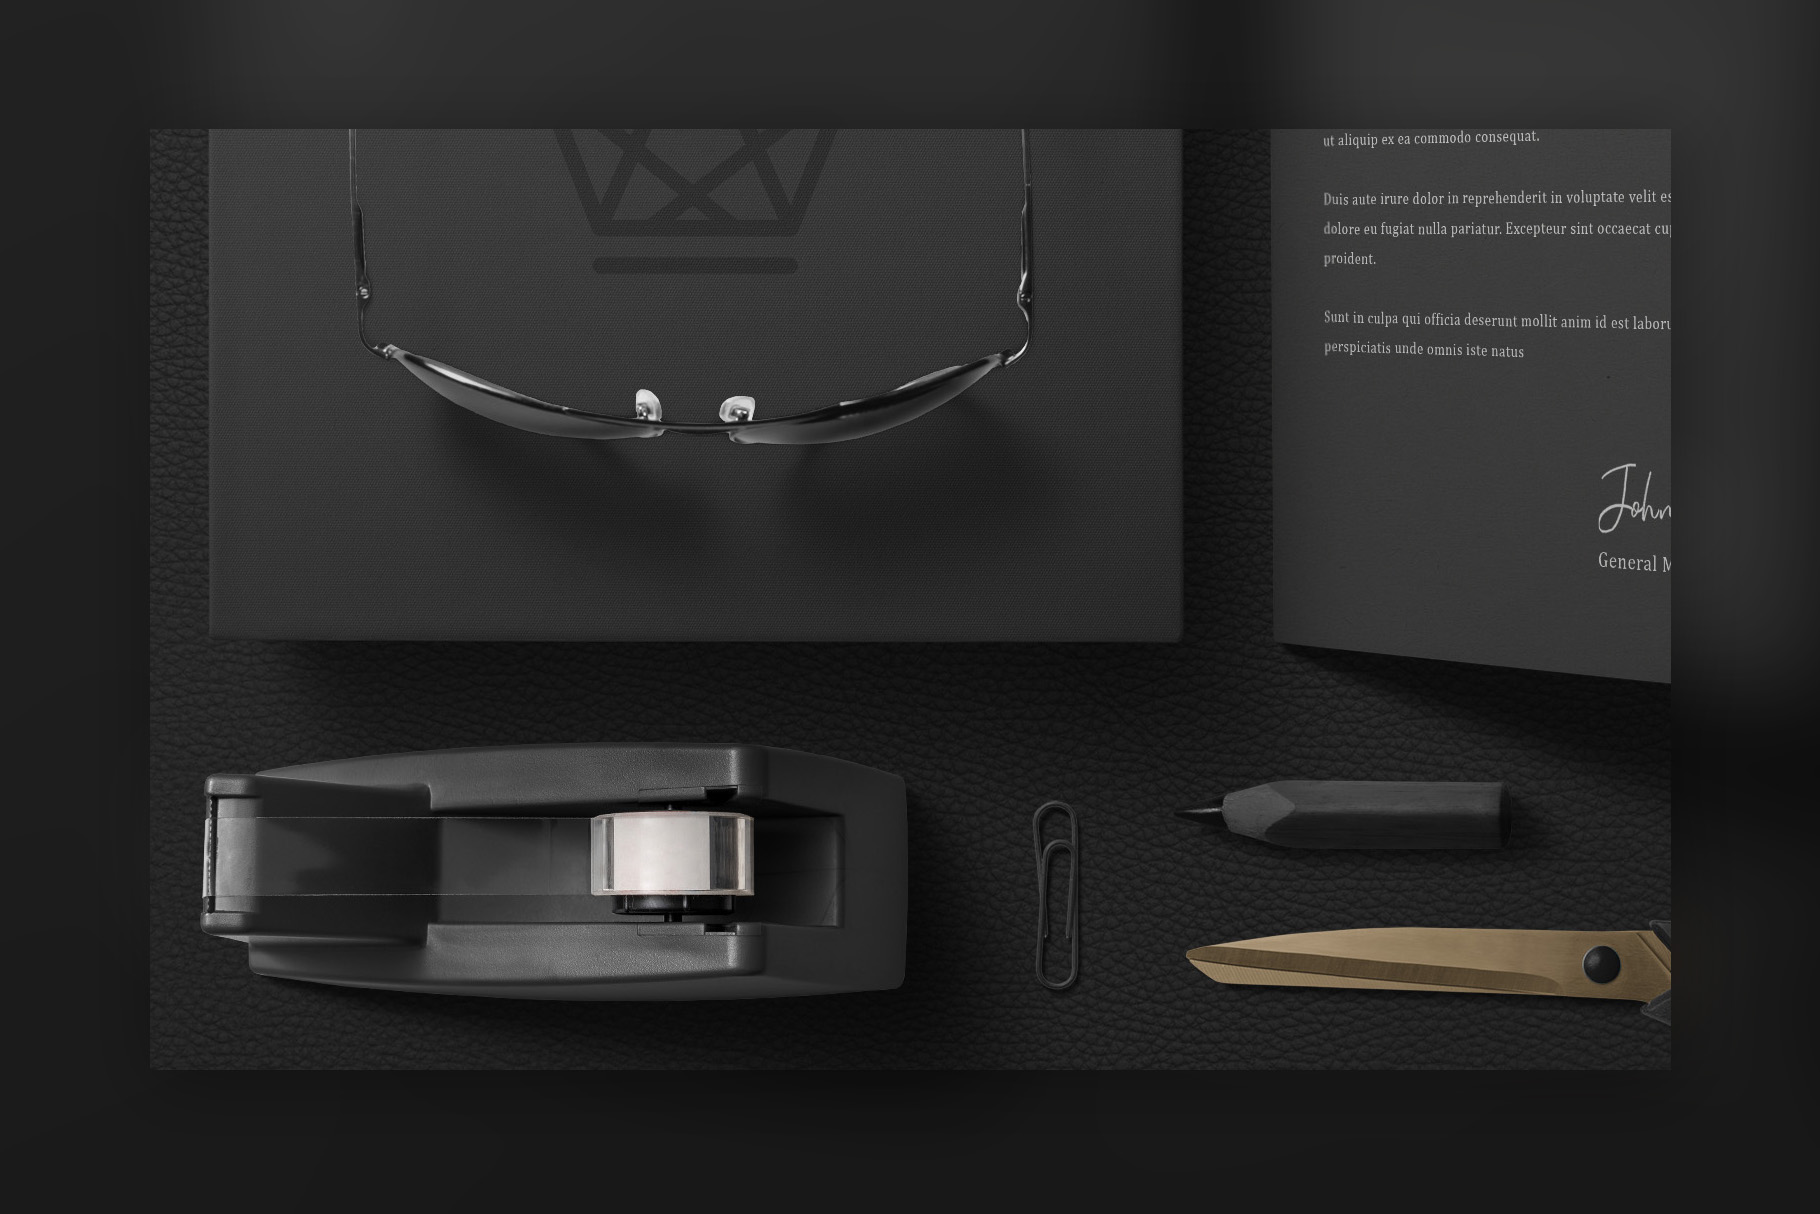 Black Branding Mockups Vol.2 example image 4